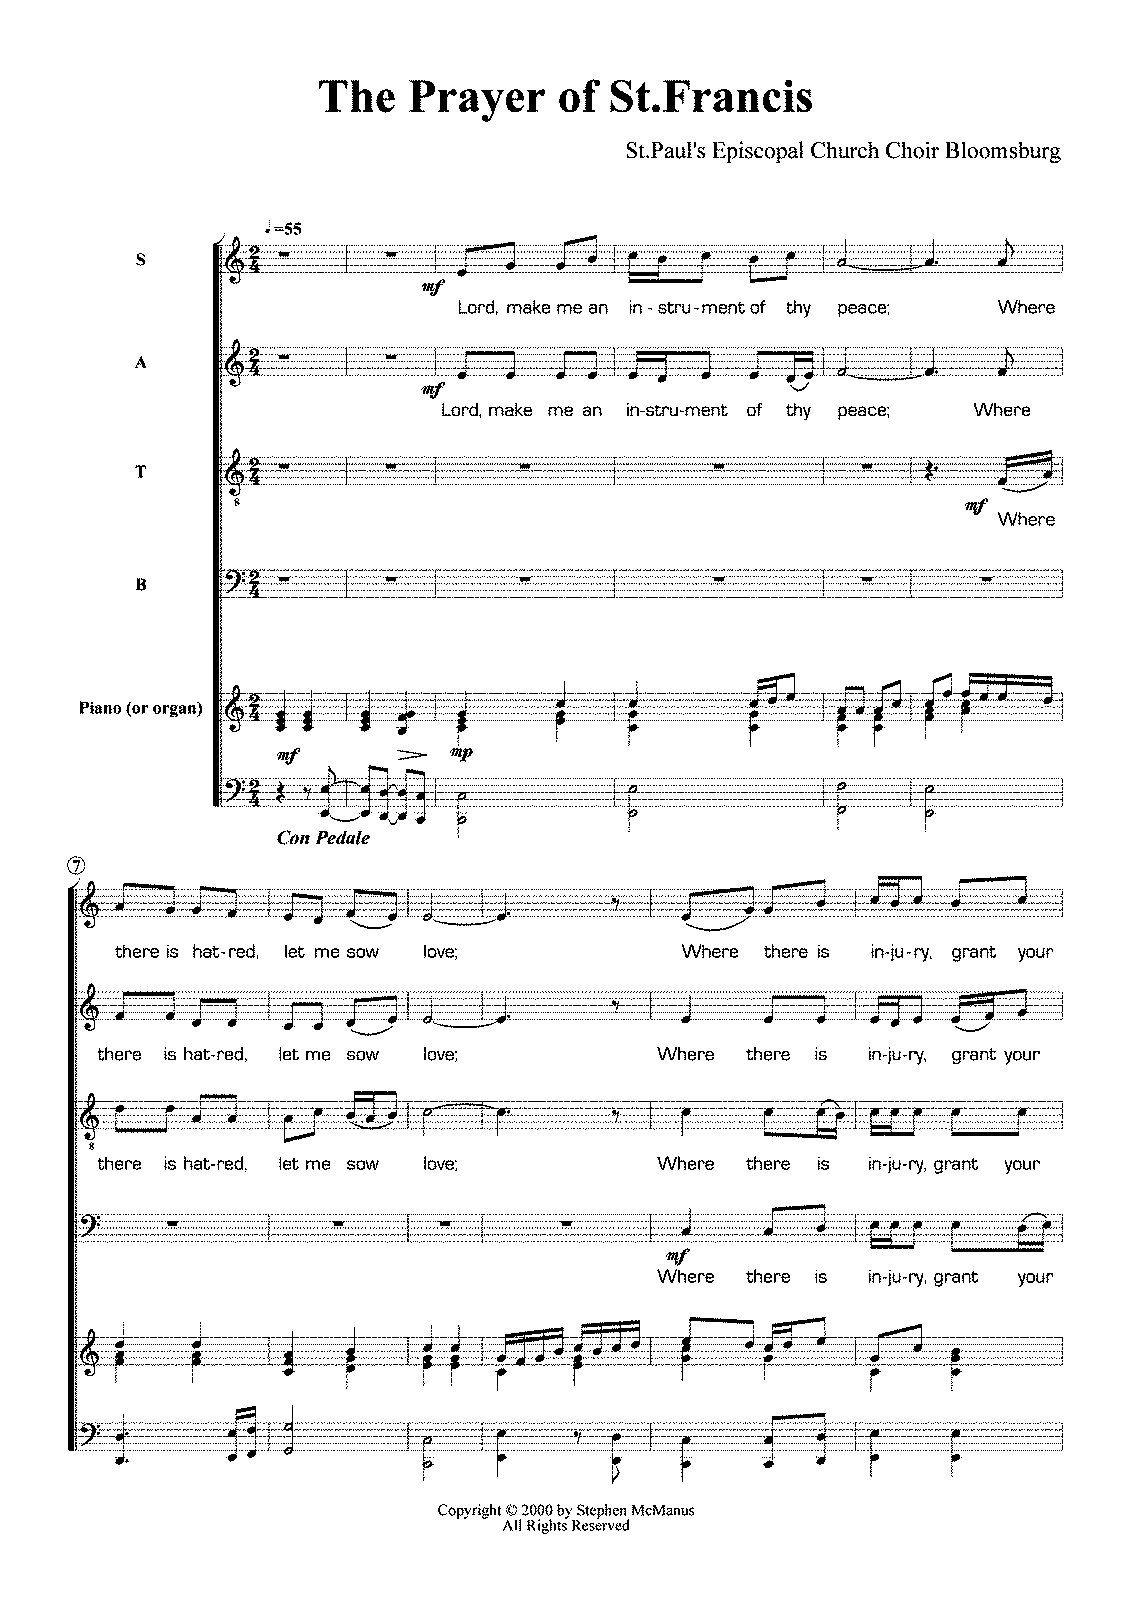 PMLP321151-The Prayer of St Francis Full Score.pdf